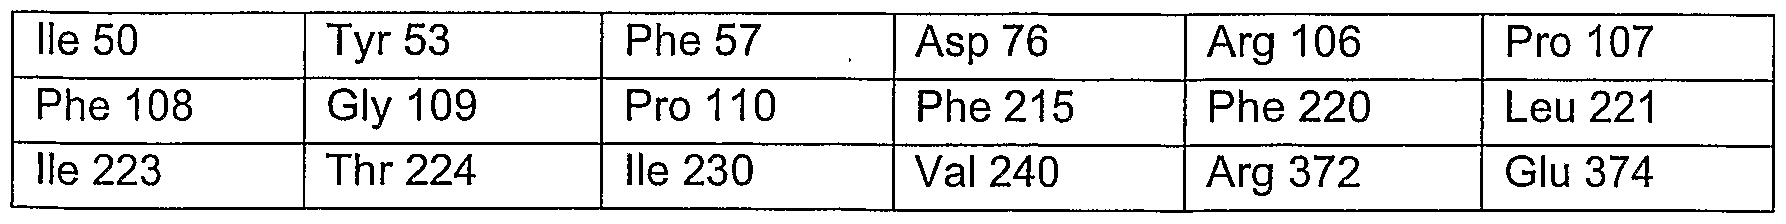 WO2005105842A2 - Crystal structure of cytochrome p450 3a4 and uses